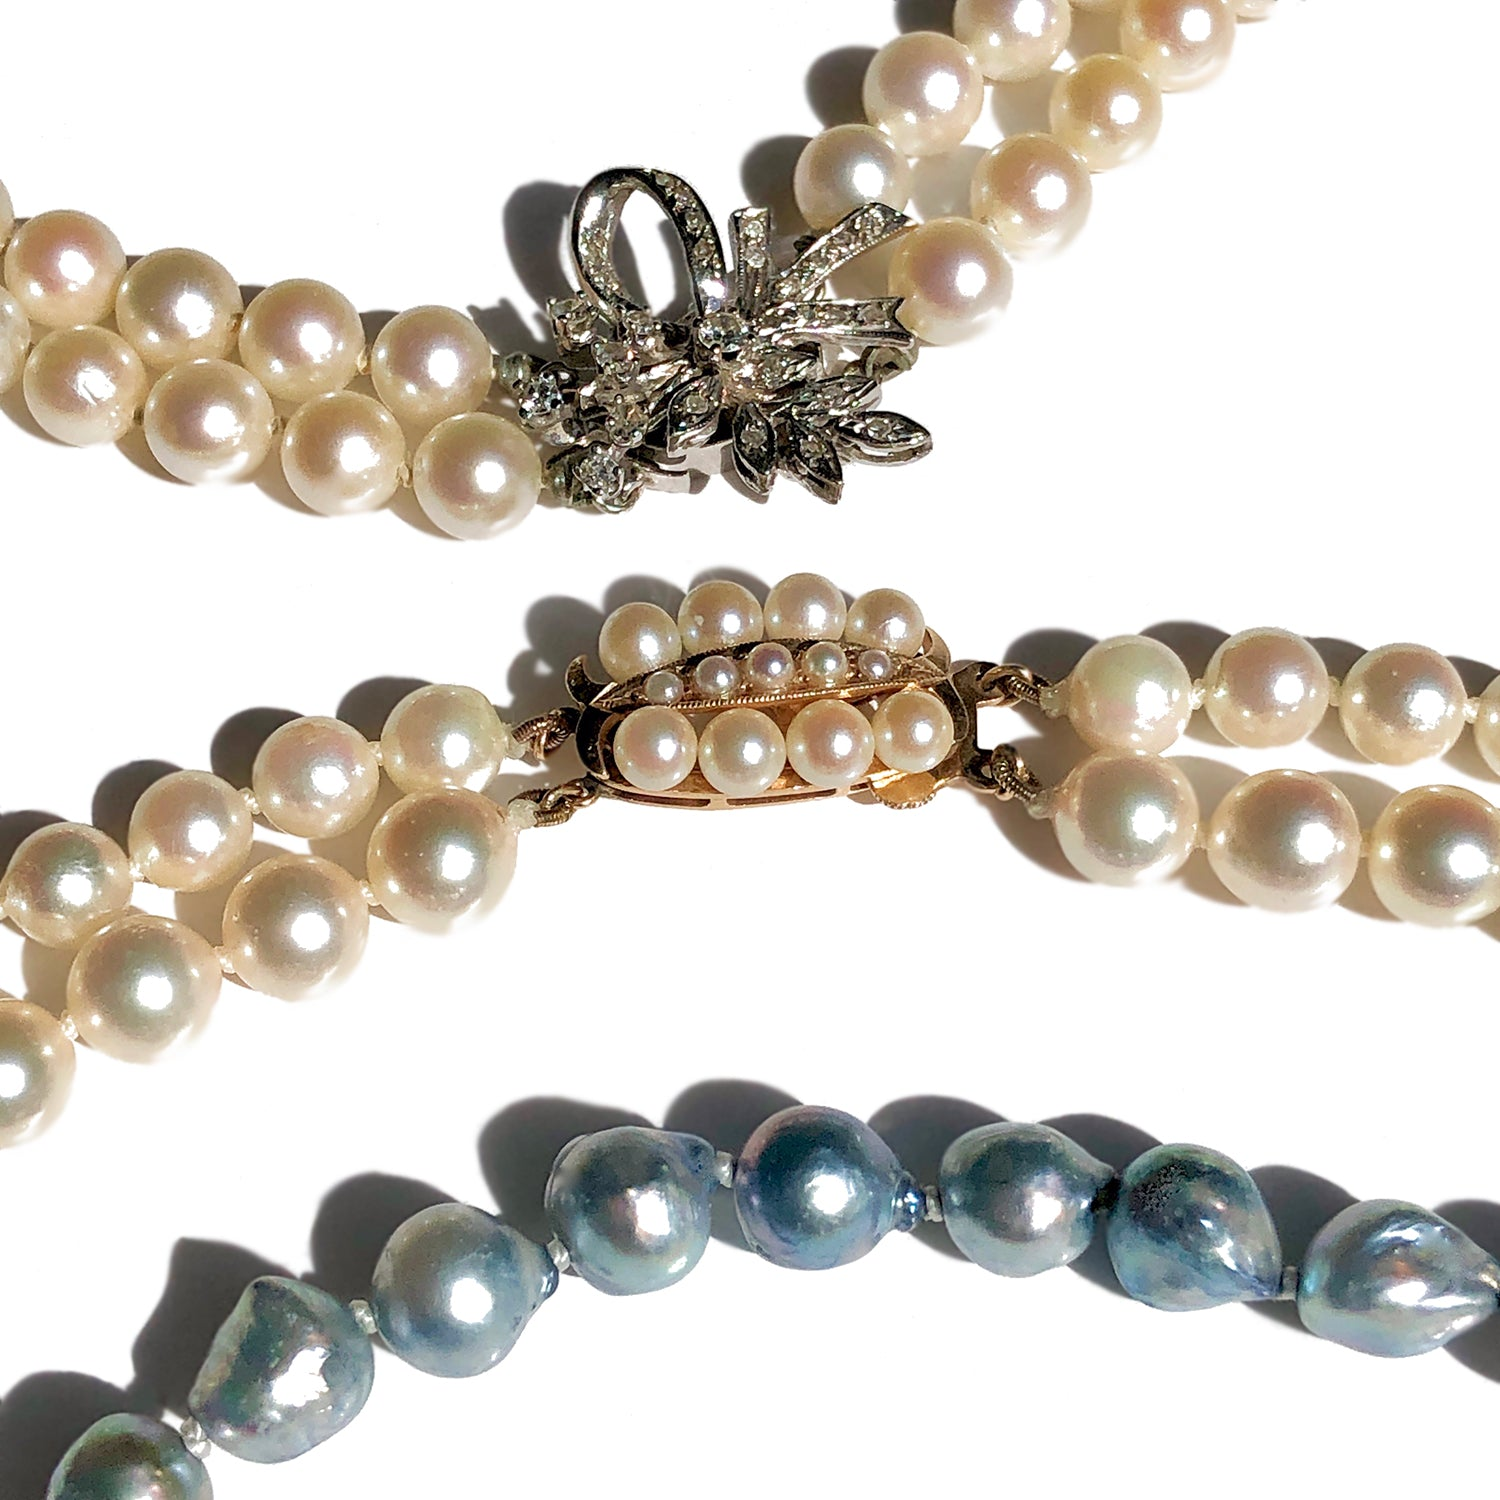 Vintage Akoya Pearl Necklaces in White and Blue